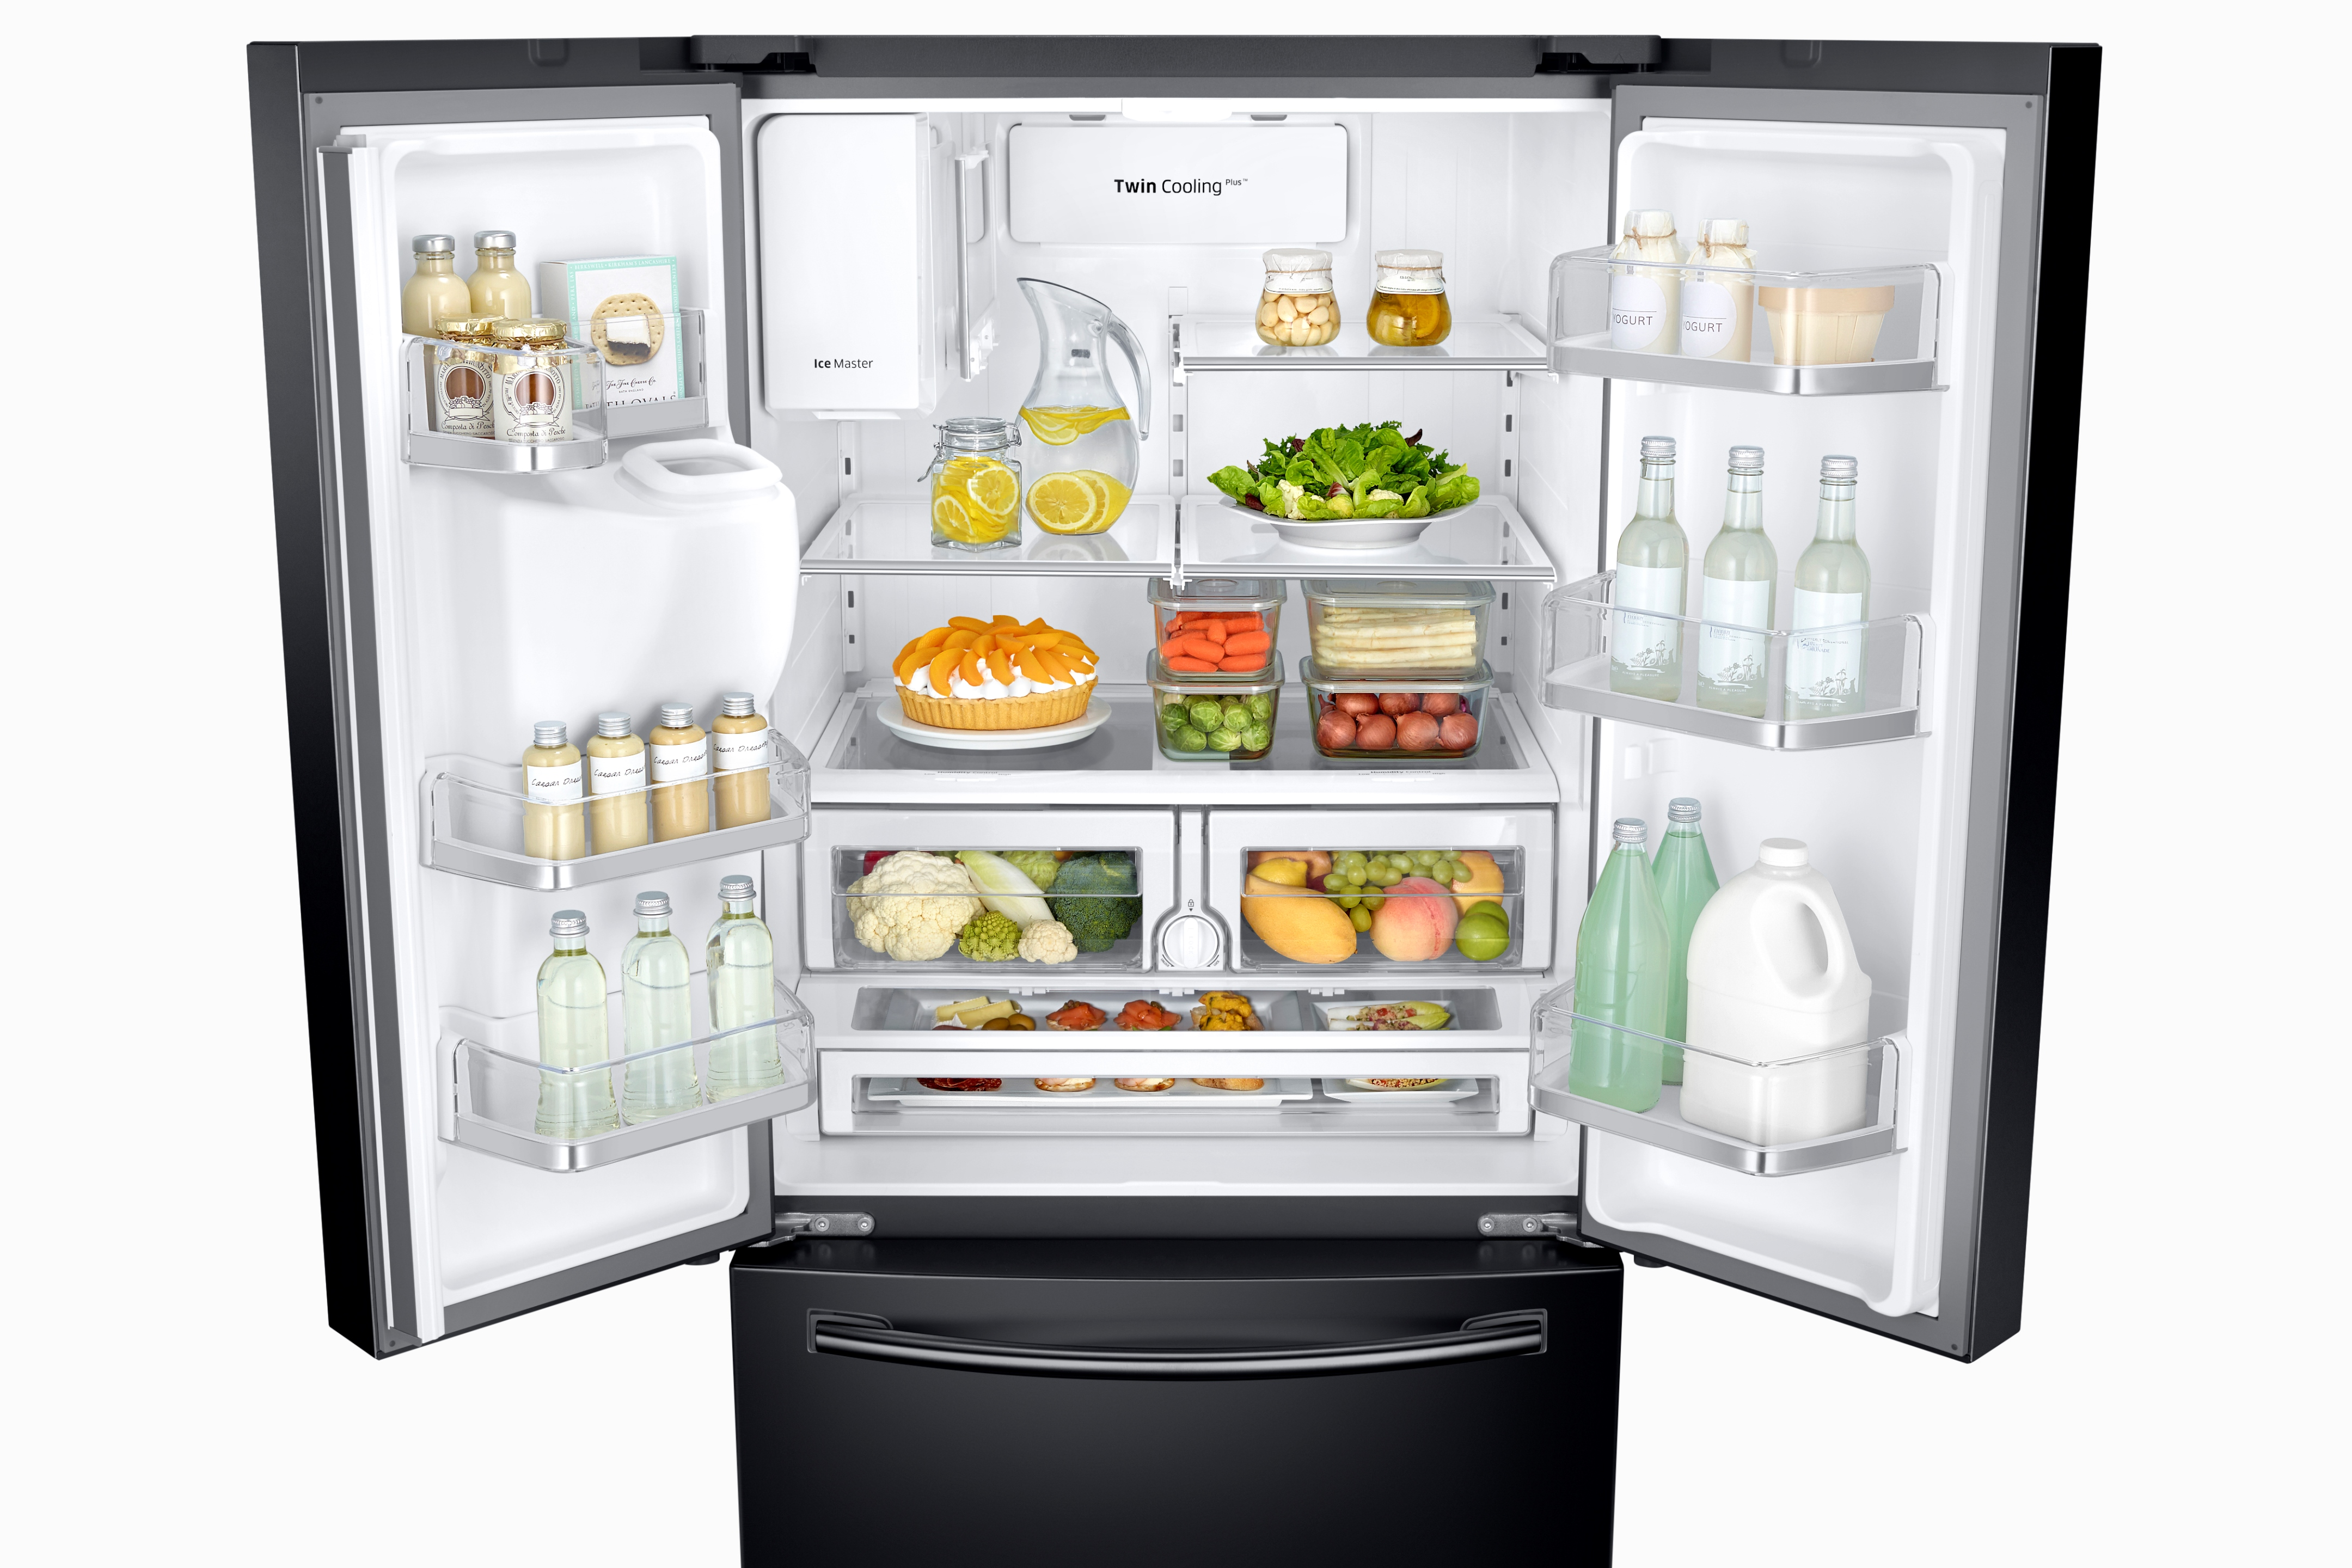 Samsung RF26J7500BC/AA 25.5 cu. ft. Capacity 3-Door French Door Refrigerator with CoolSelect Pantry™ - Black